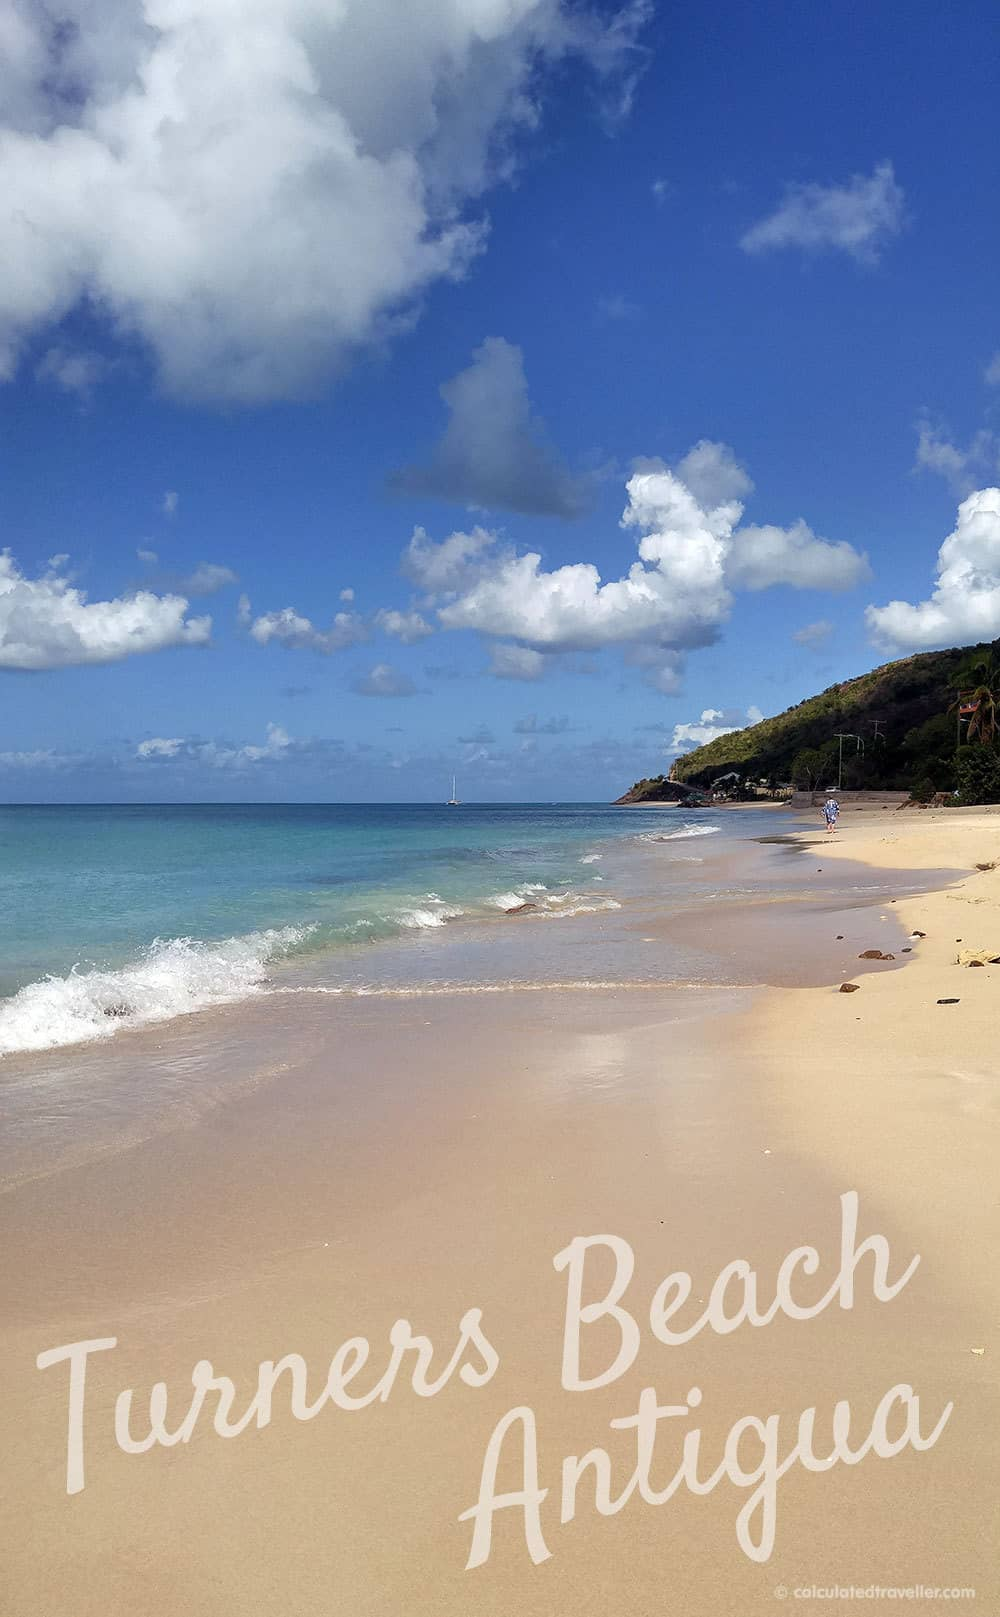 One Pristine Day at Turners Beach in Antigua. A how to guide for quiet on the beach. #beach #Antigua #Caribbean #cruise